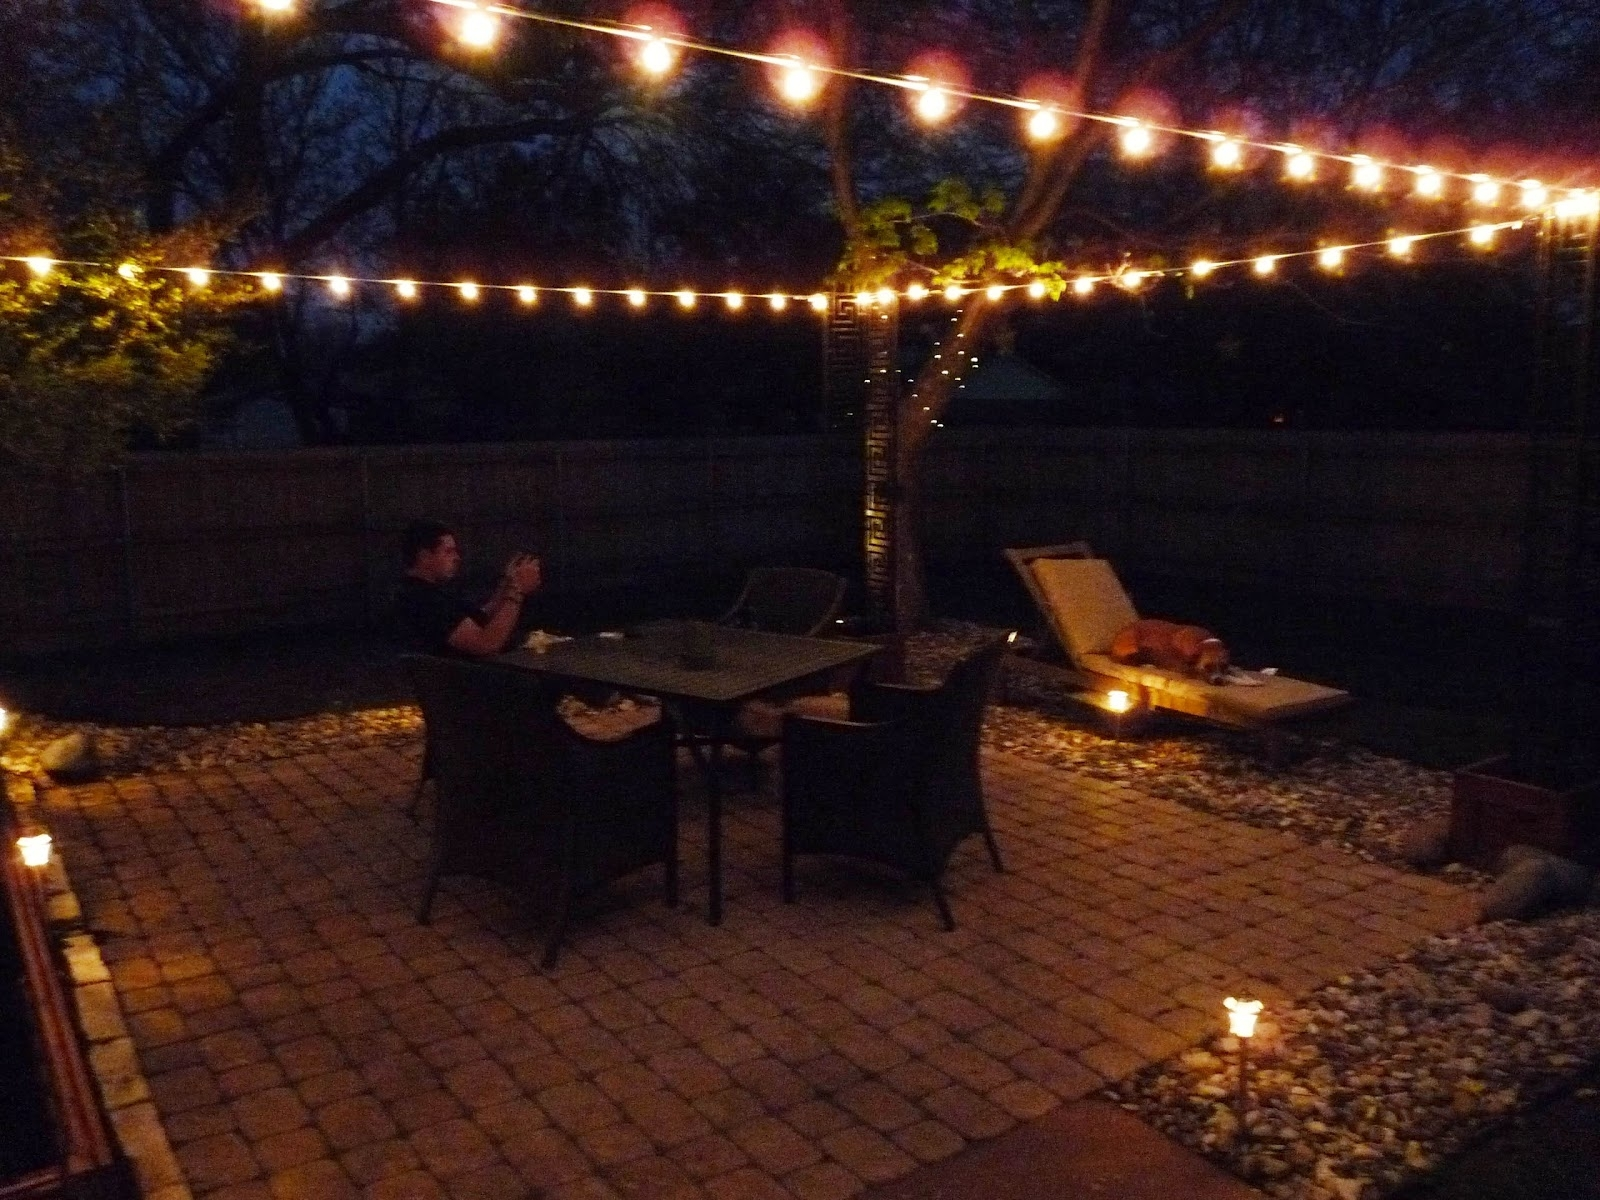 Cafe Outdoor Hanging Lights: 21 Astonishing Outdoor Cafe Lights Foto In Outdoor Hanging Decorative Lights (#2 of 15)